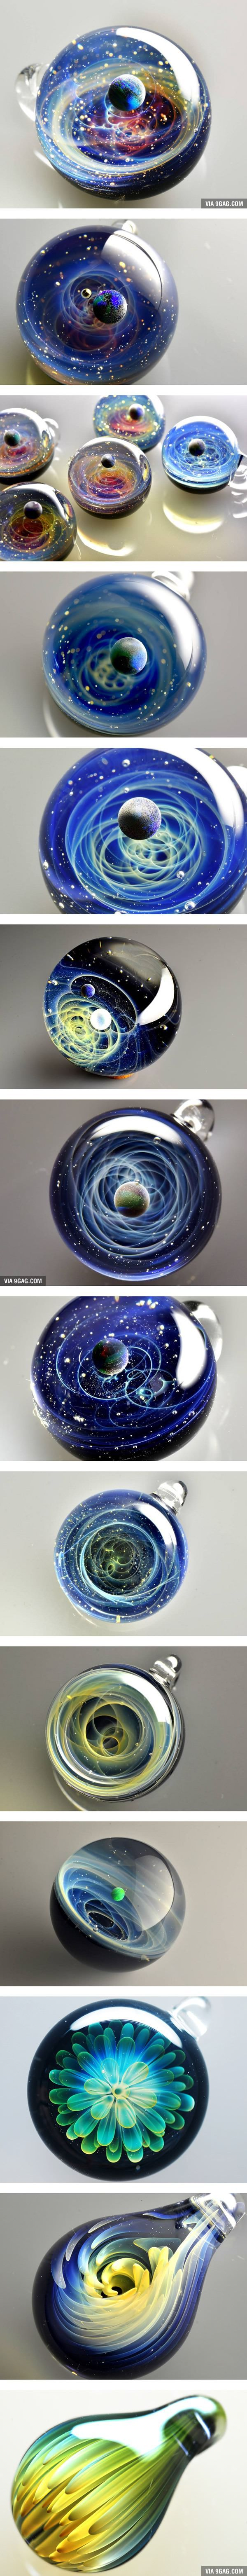 Extraordinary Space Glass With Solar Systems And Flowers Encased In It (By…